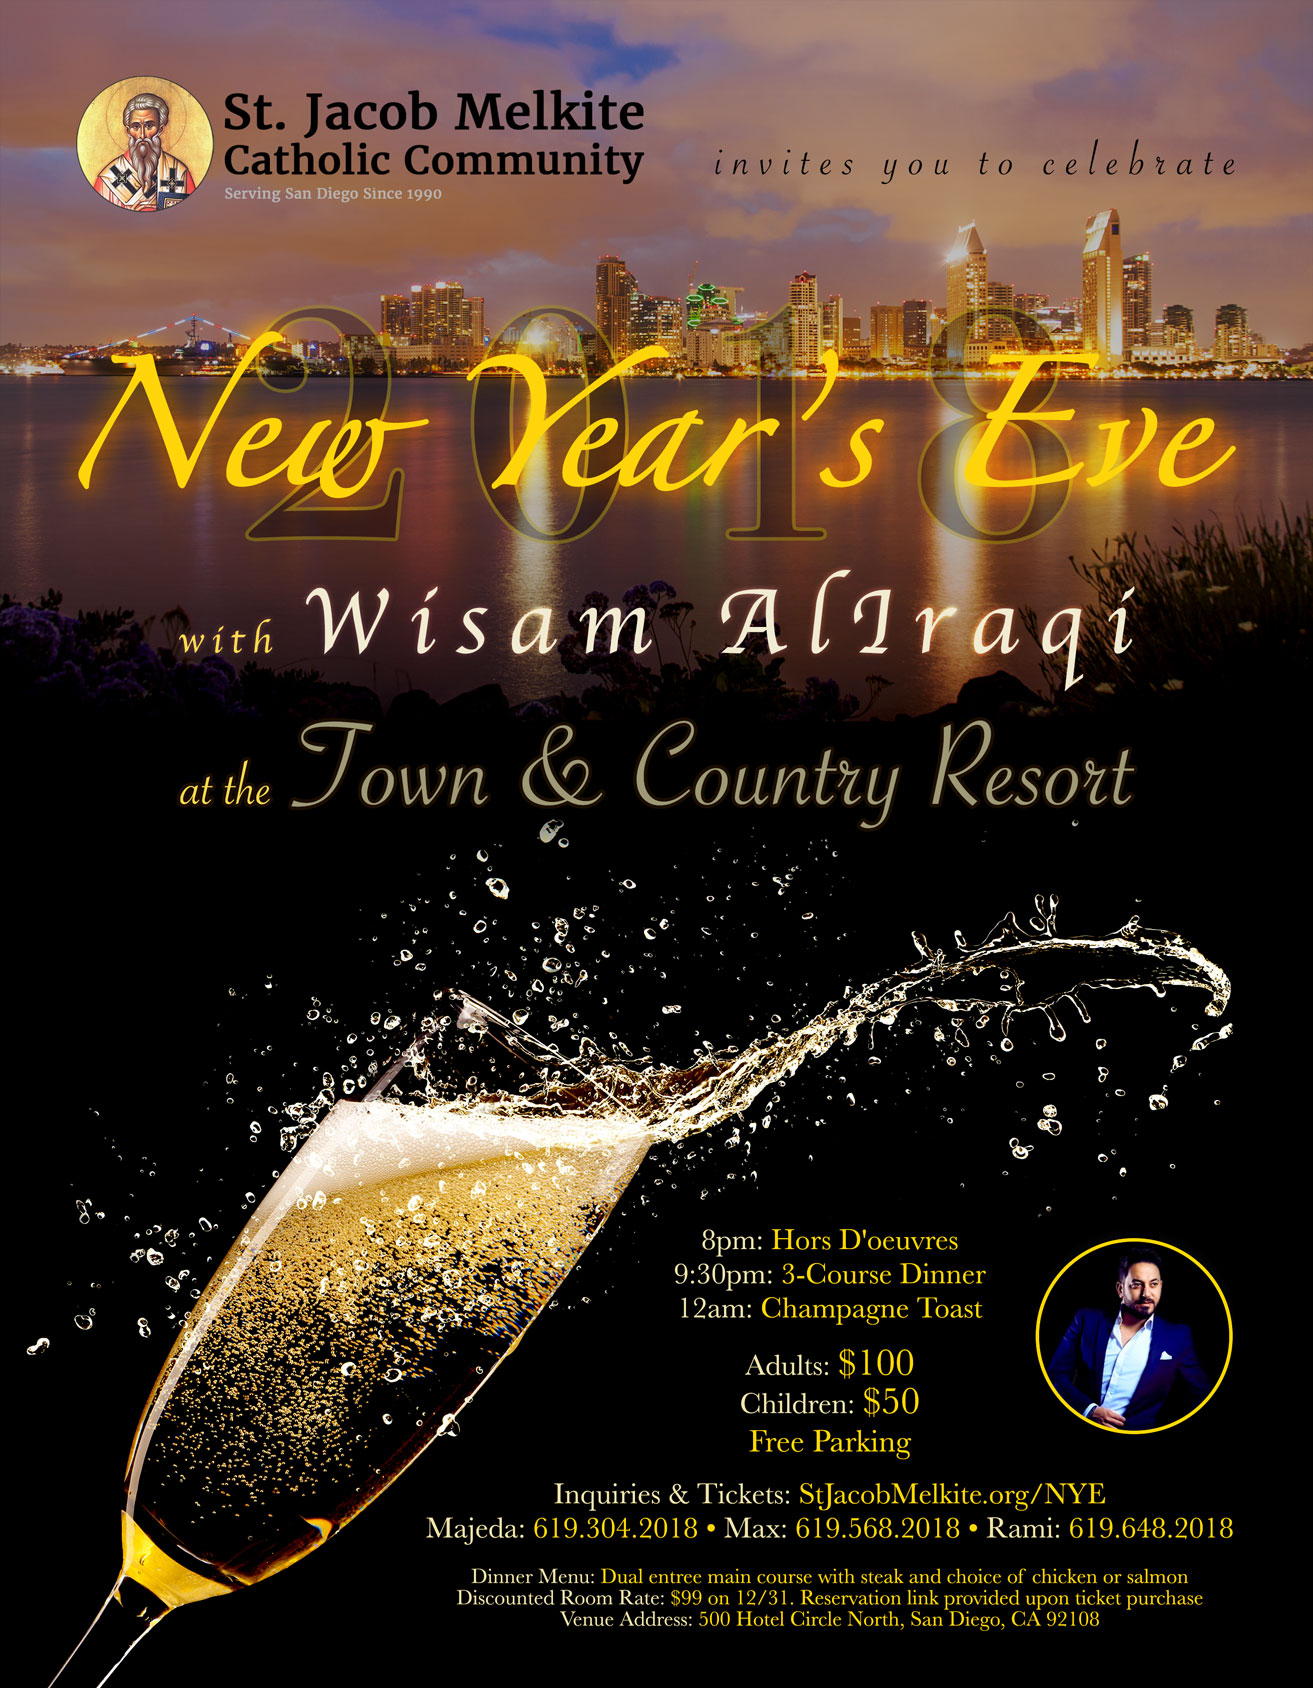 St. Jacob Melkite New Year's Eve 2018